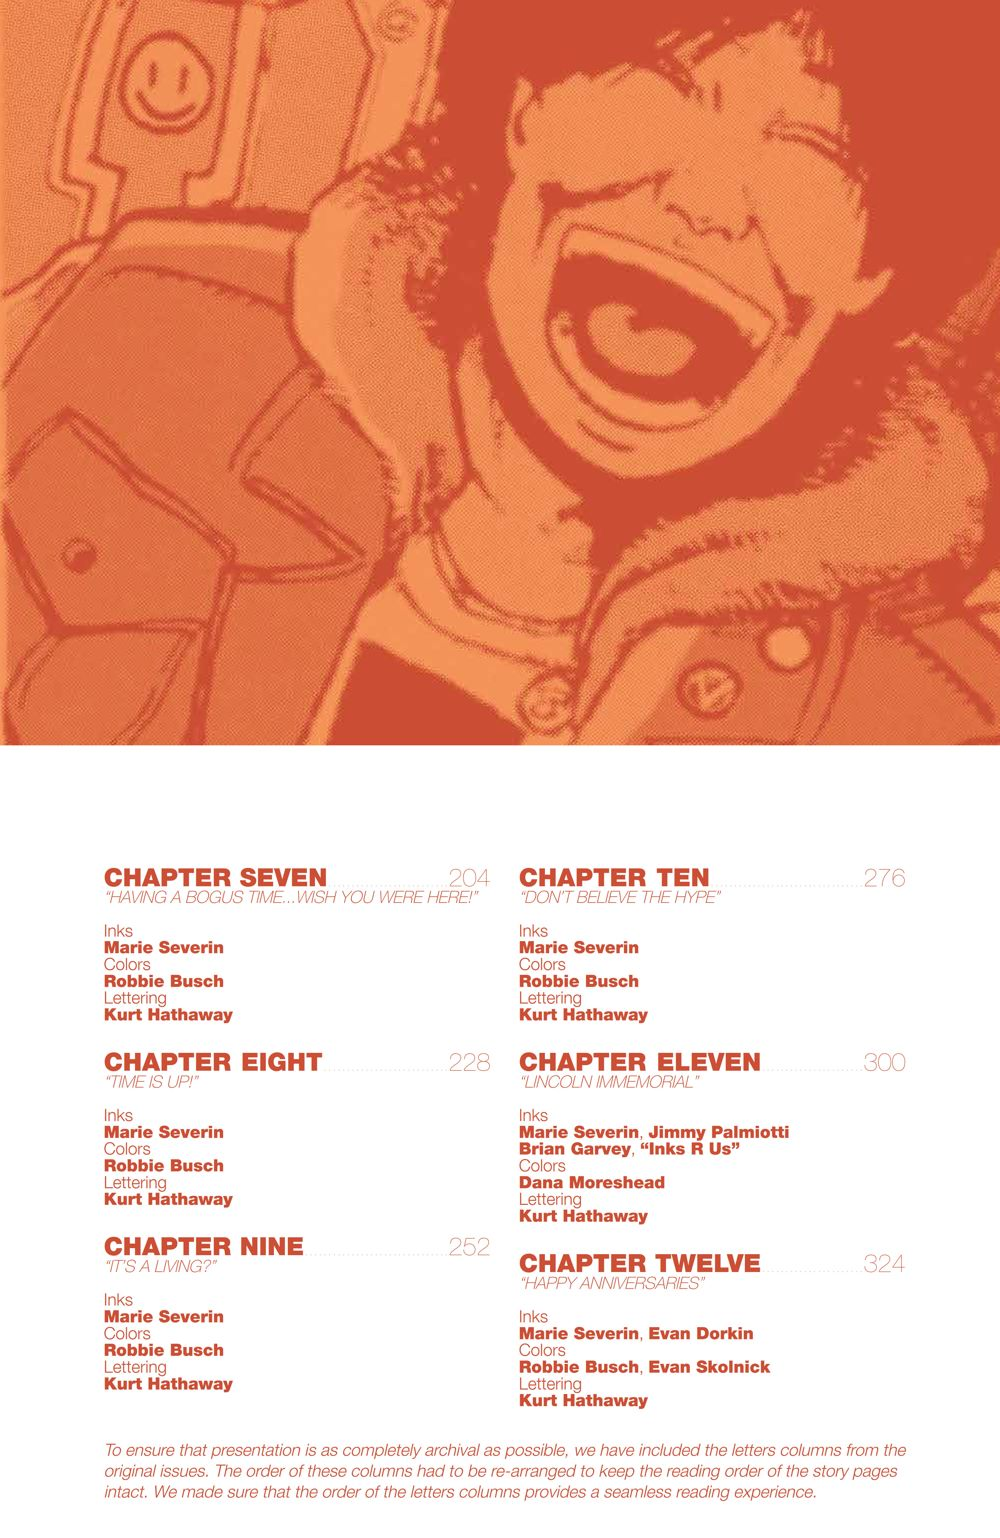 BillTed_Archive_SC_PRESS_7-1 ComicList Previews: BILL AND TED'S EXCELLENT COMIC BOOK ARCHIVE TP